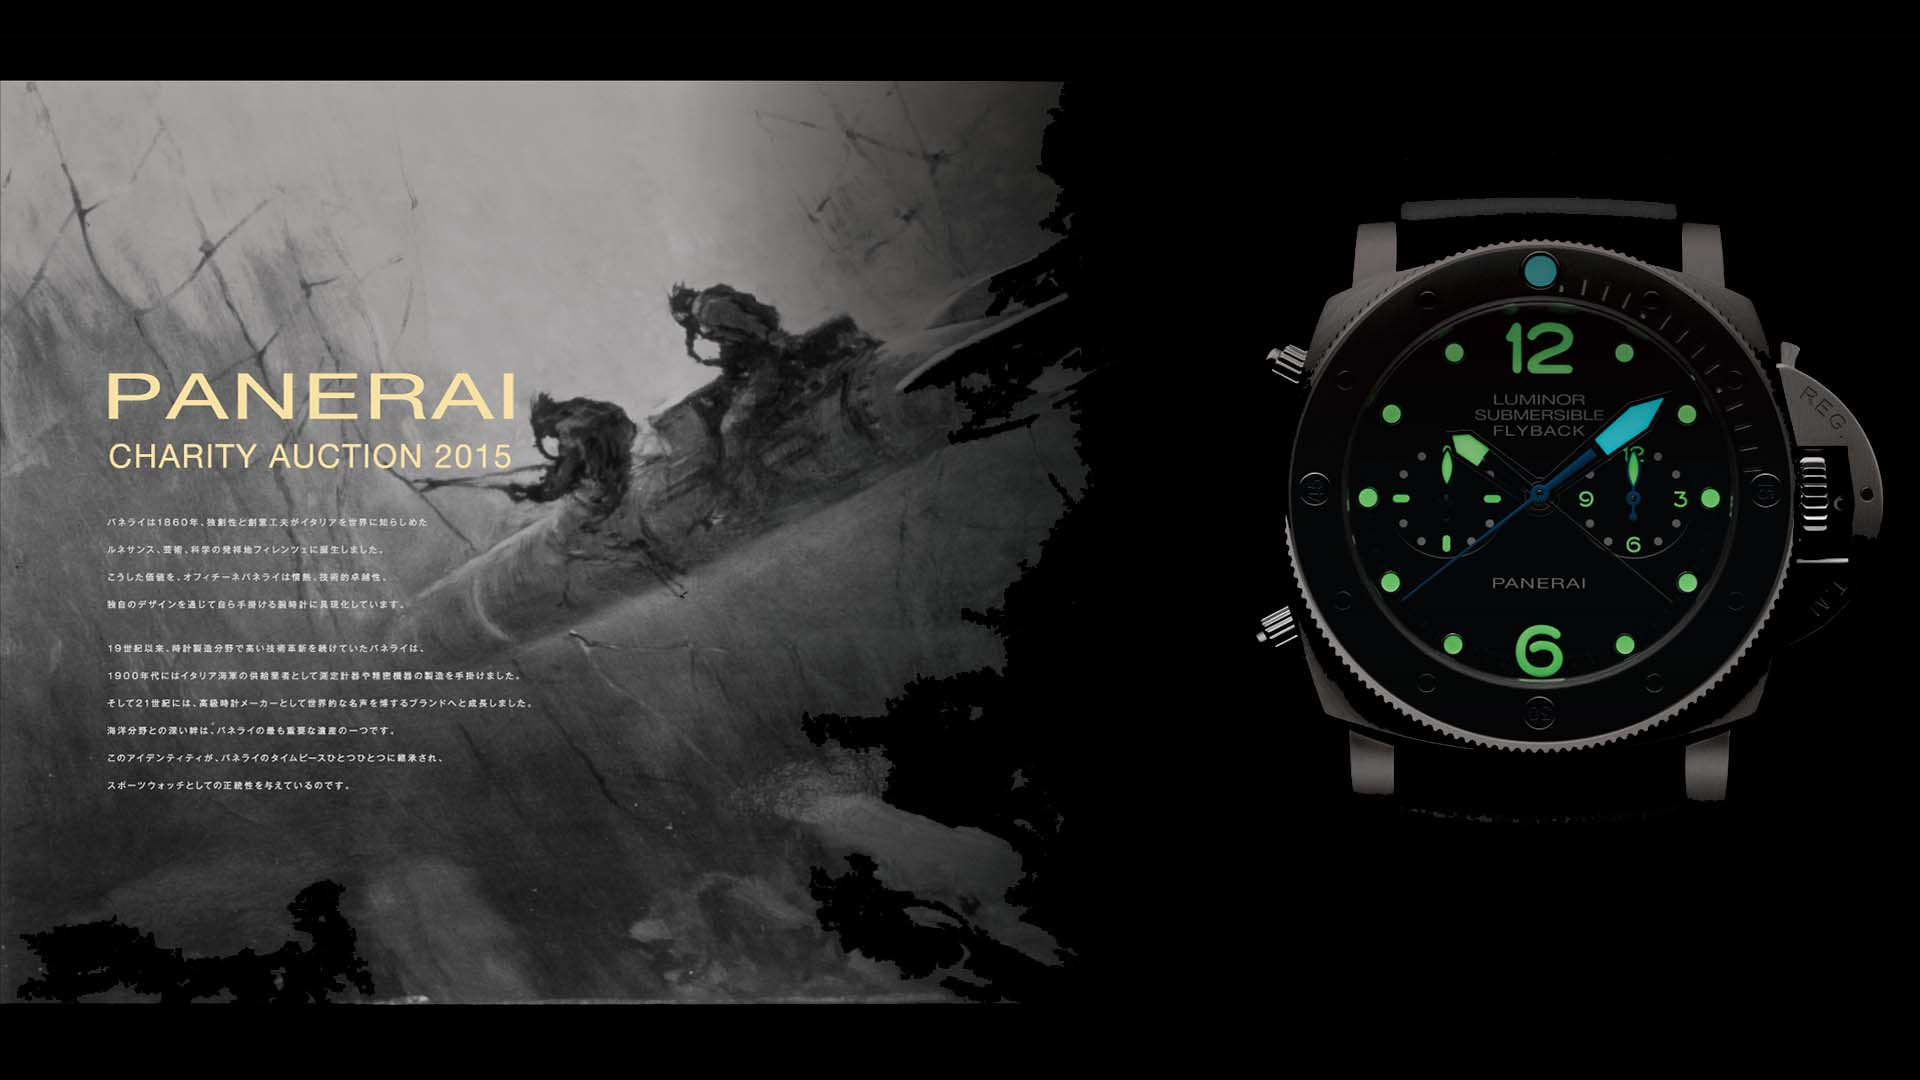 Panerai Charity Auction 2015-featured-image